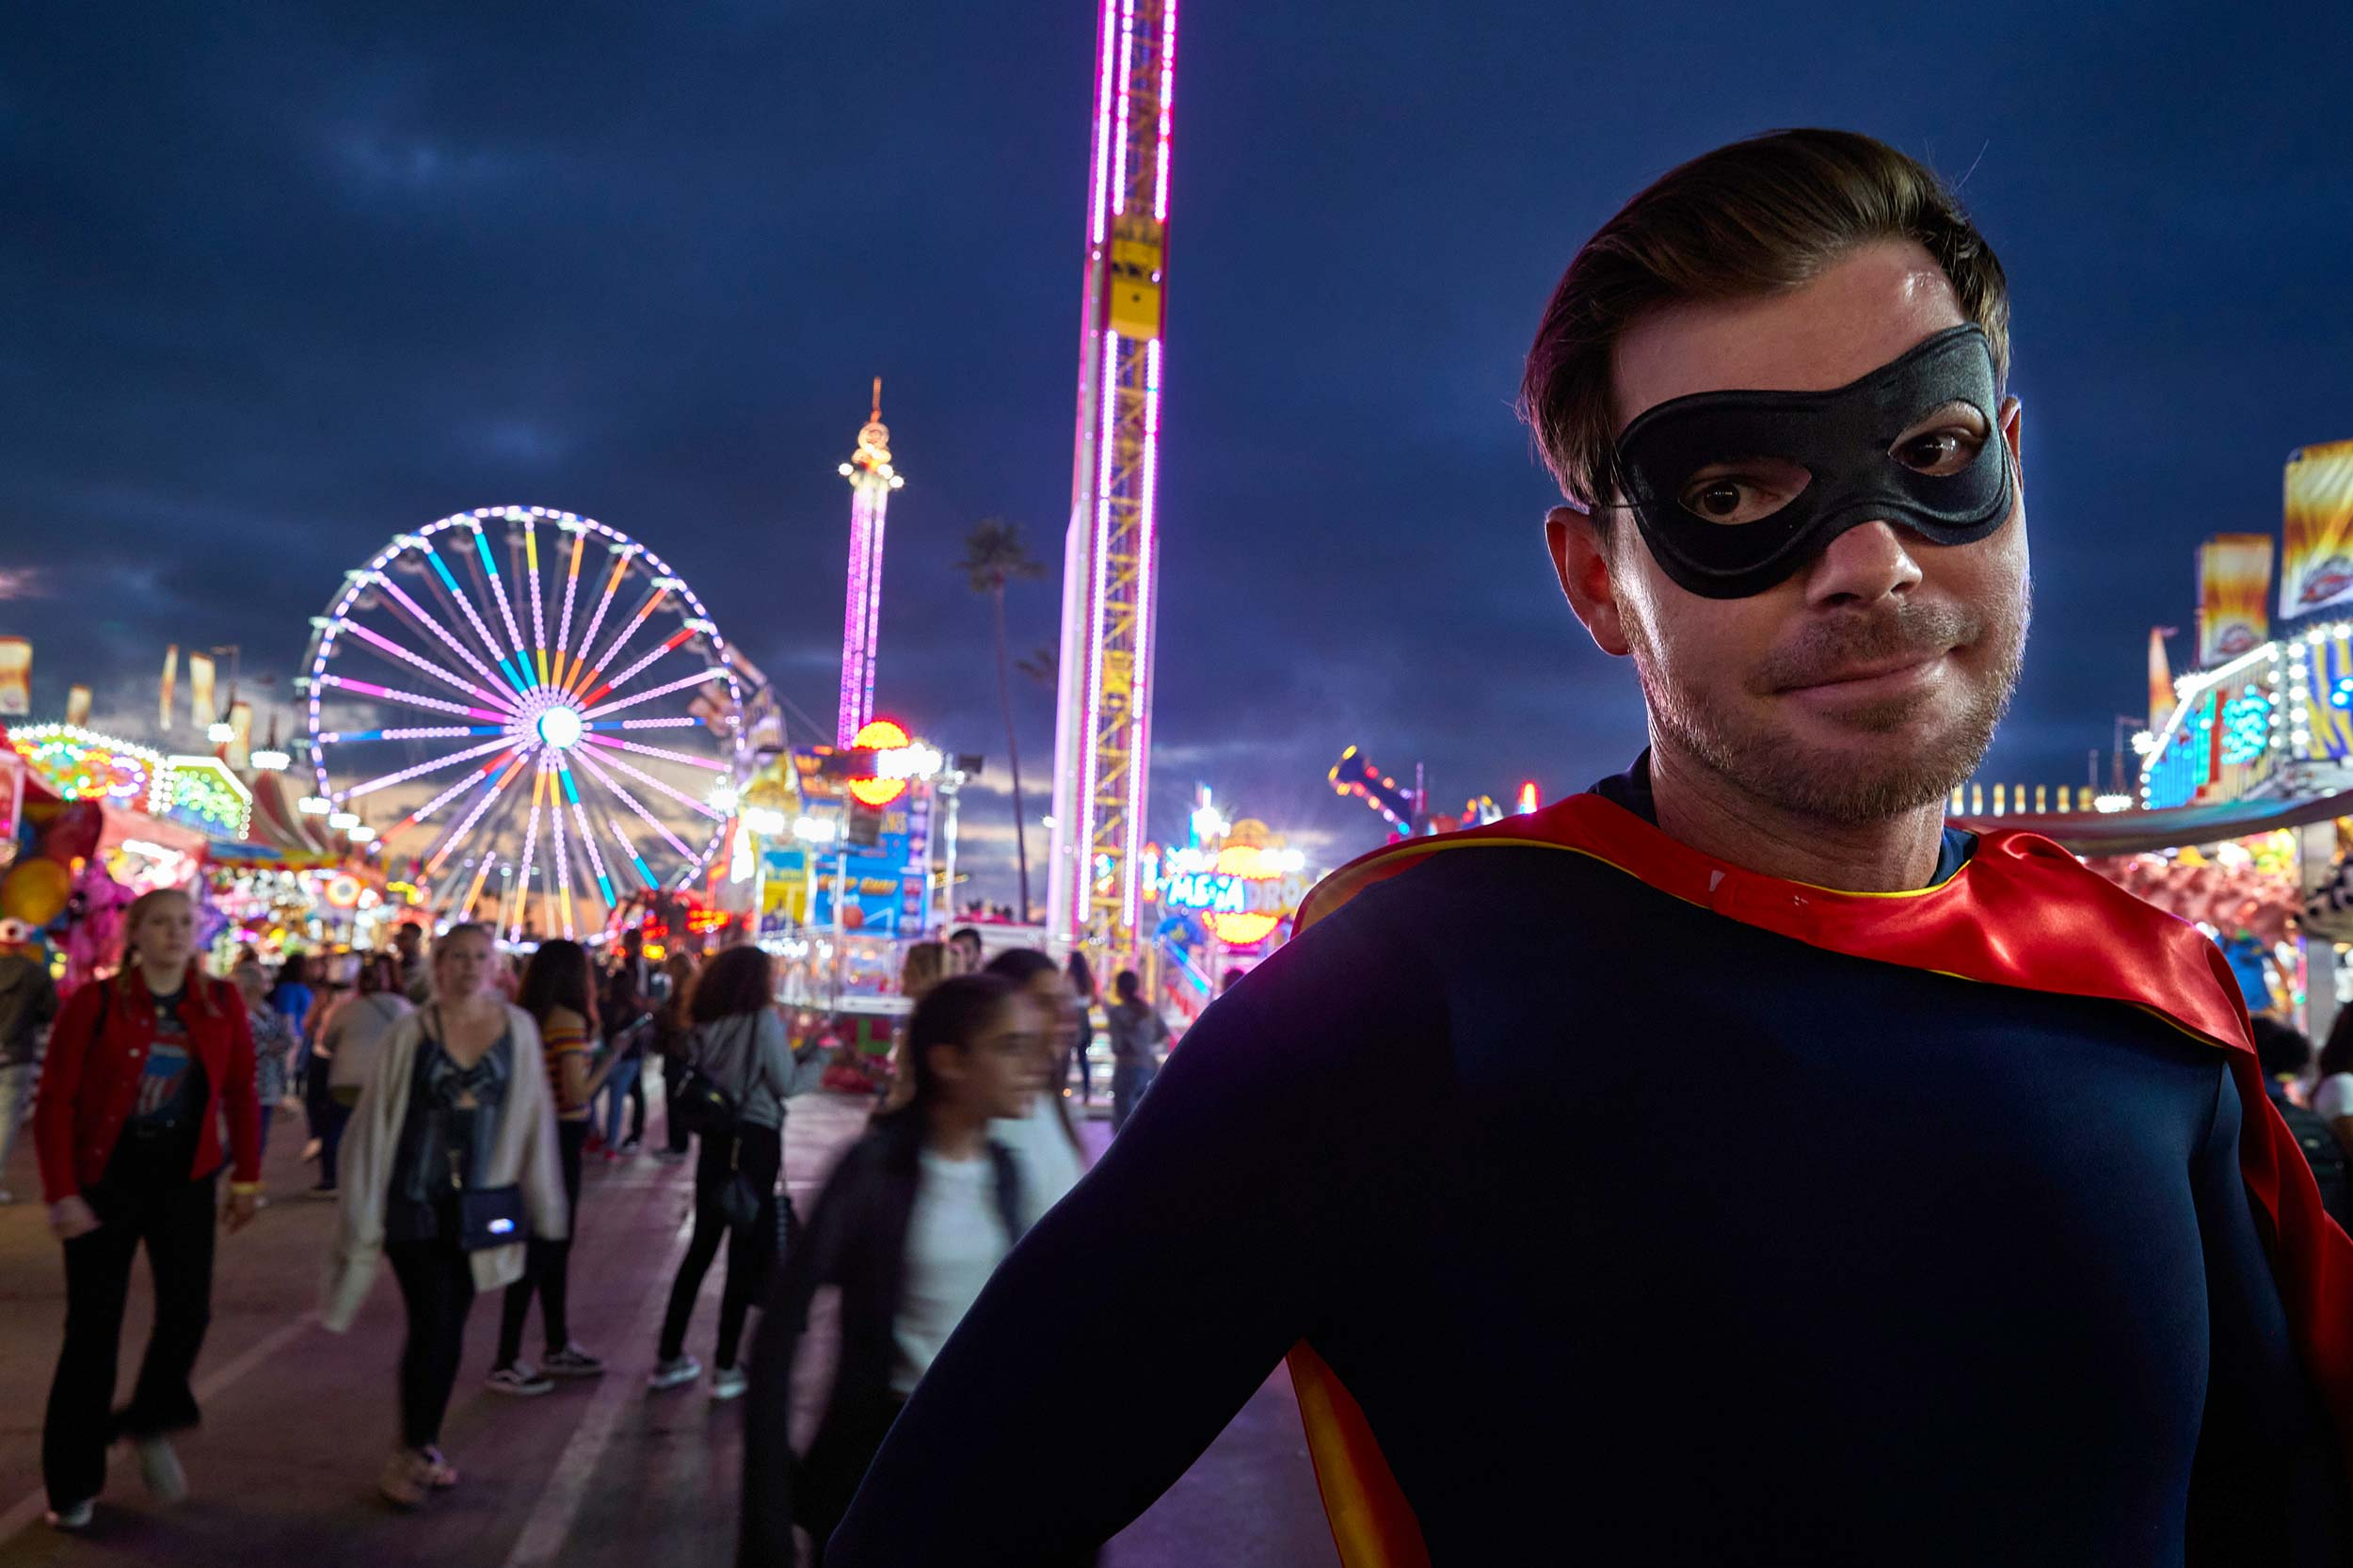 Superhero at the SD Fair at Night